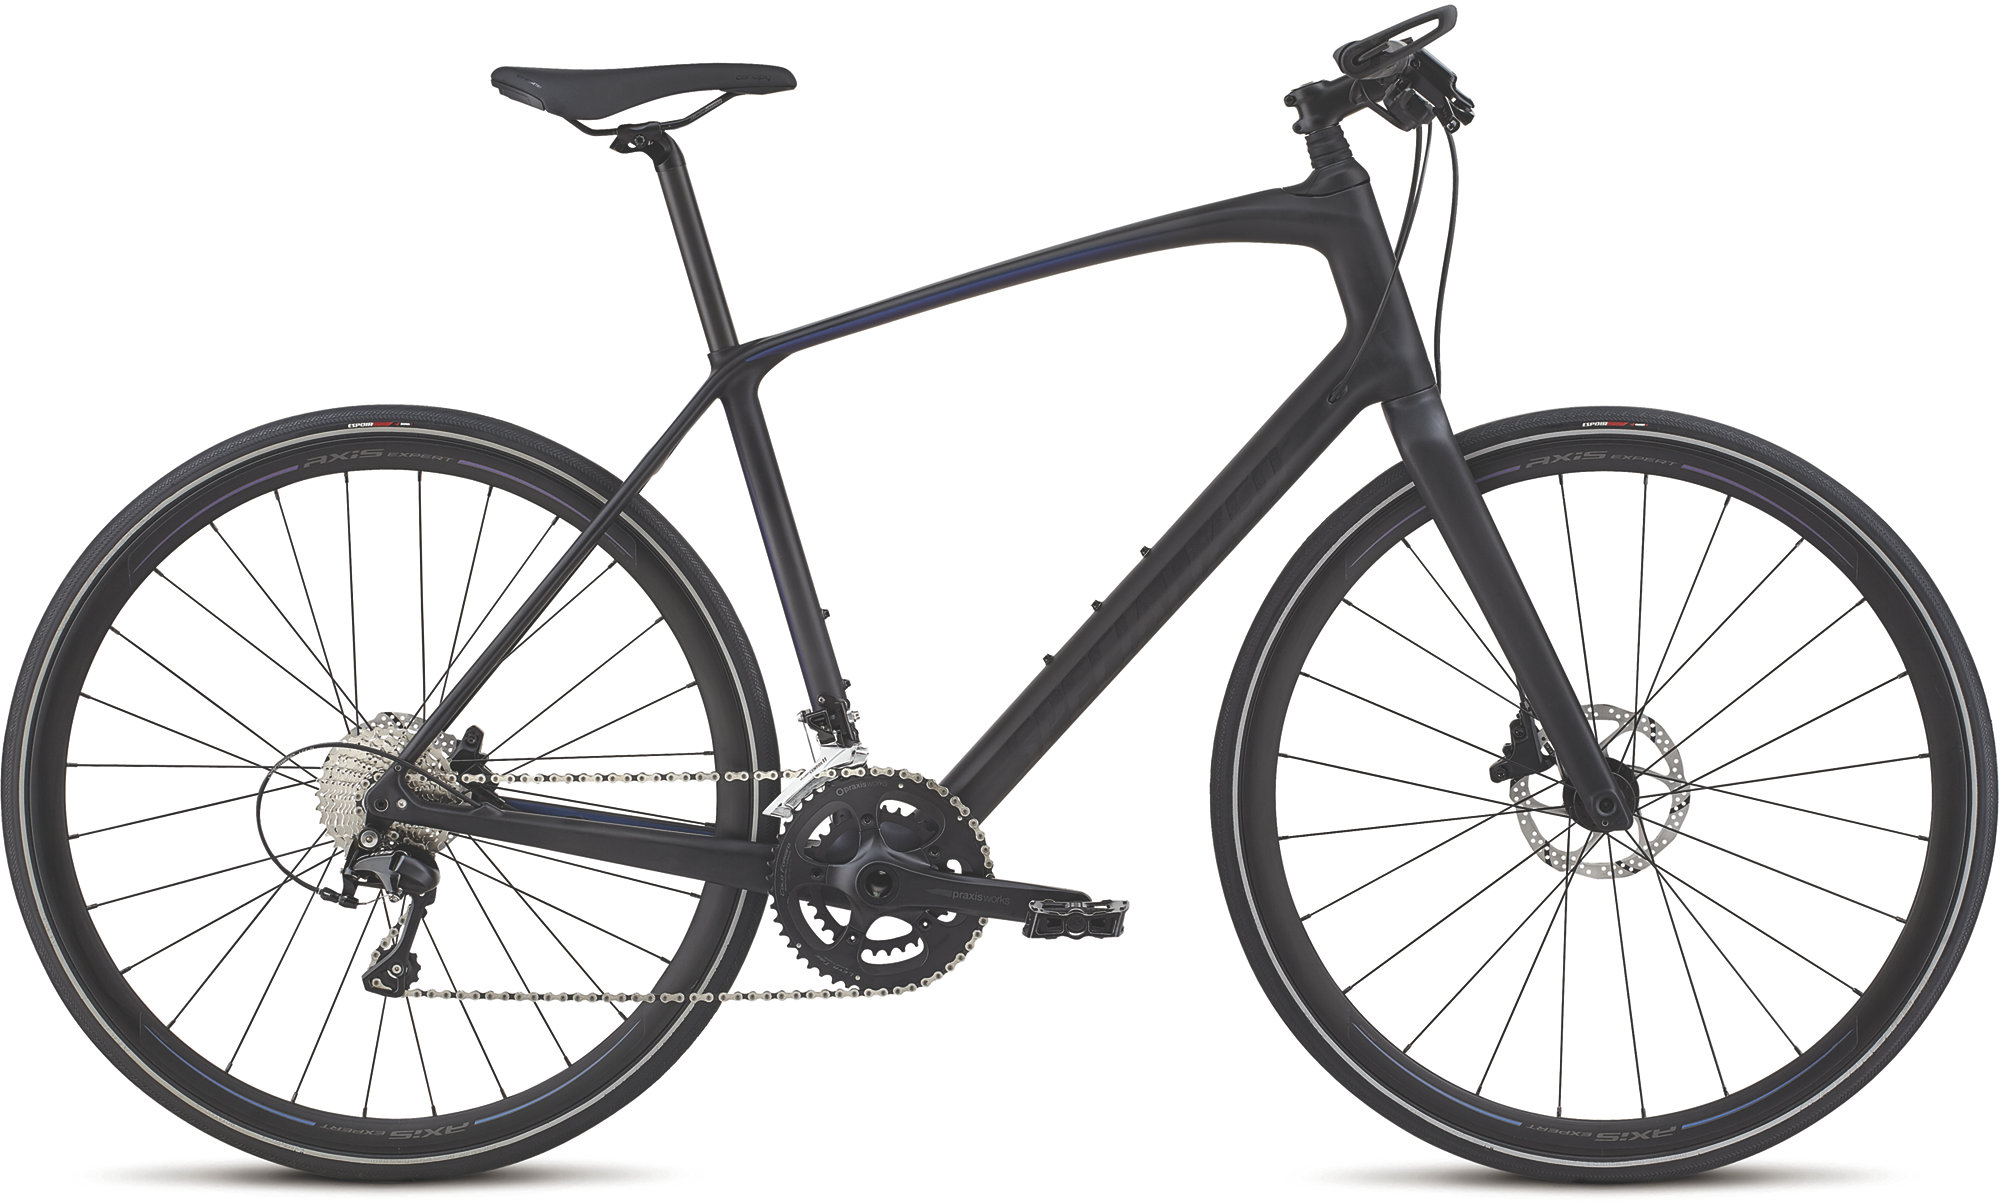 Hybrid and City Bike Deal  Specialized Sirrus Expert Carbon Hybrid Bike 2020 Graphite